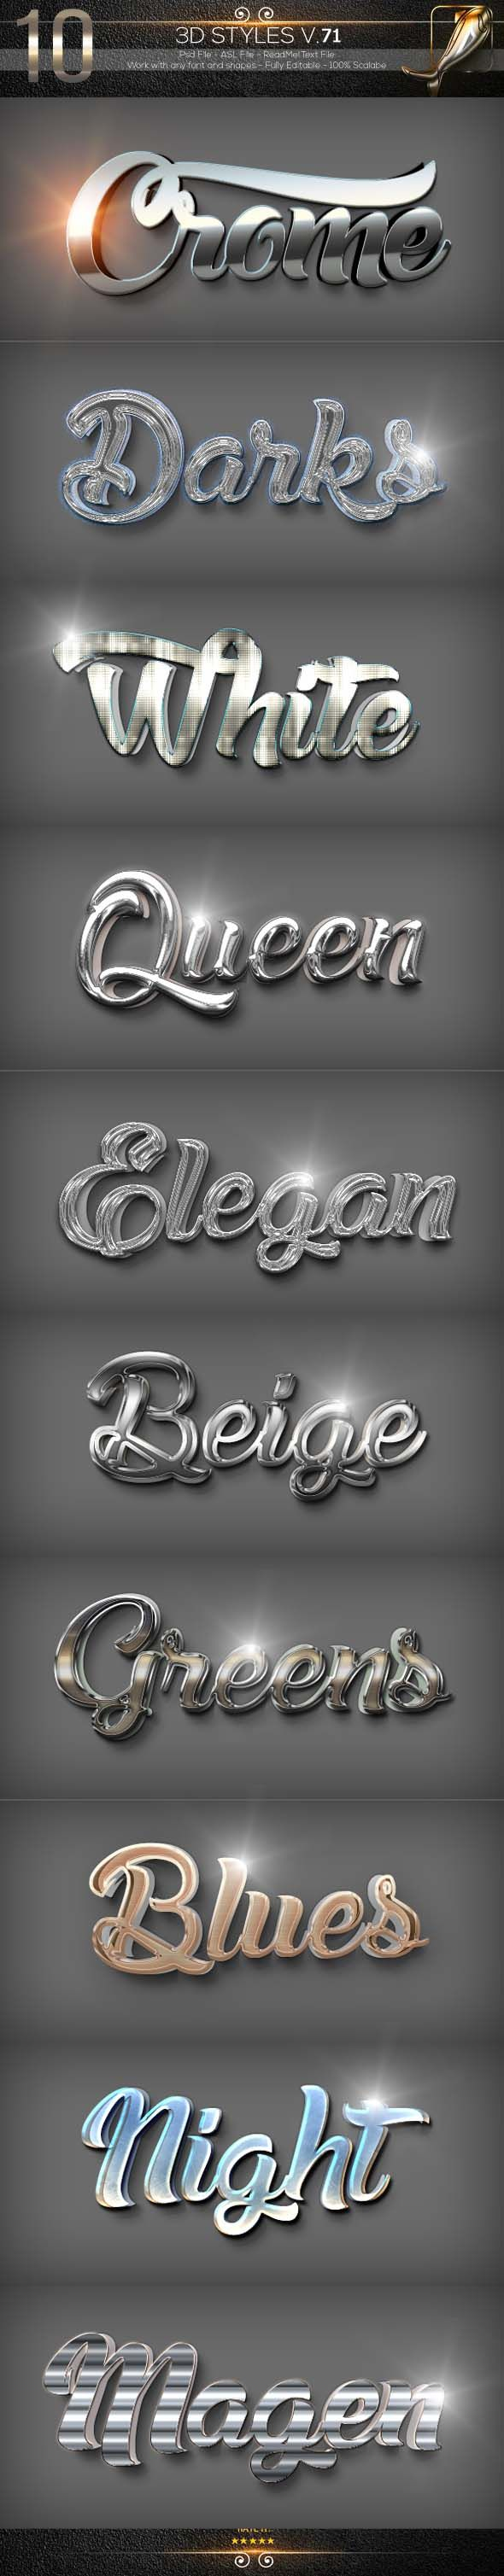 10 3d Text Styles D 71 Photoshop Text Effects Photoshop Text Text Style